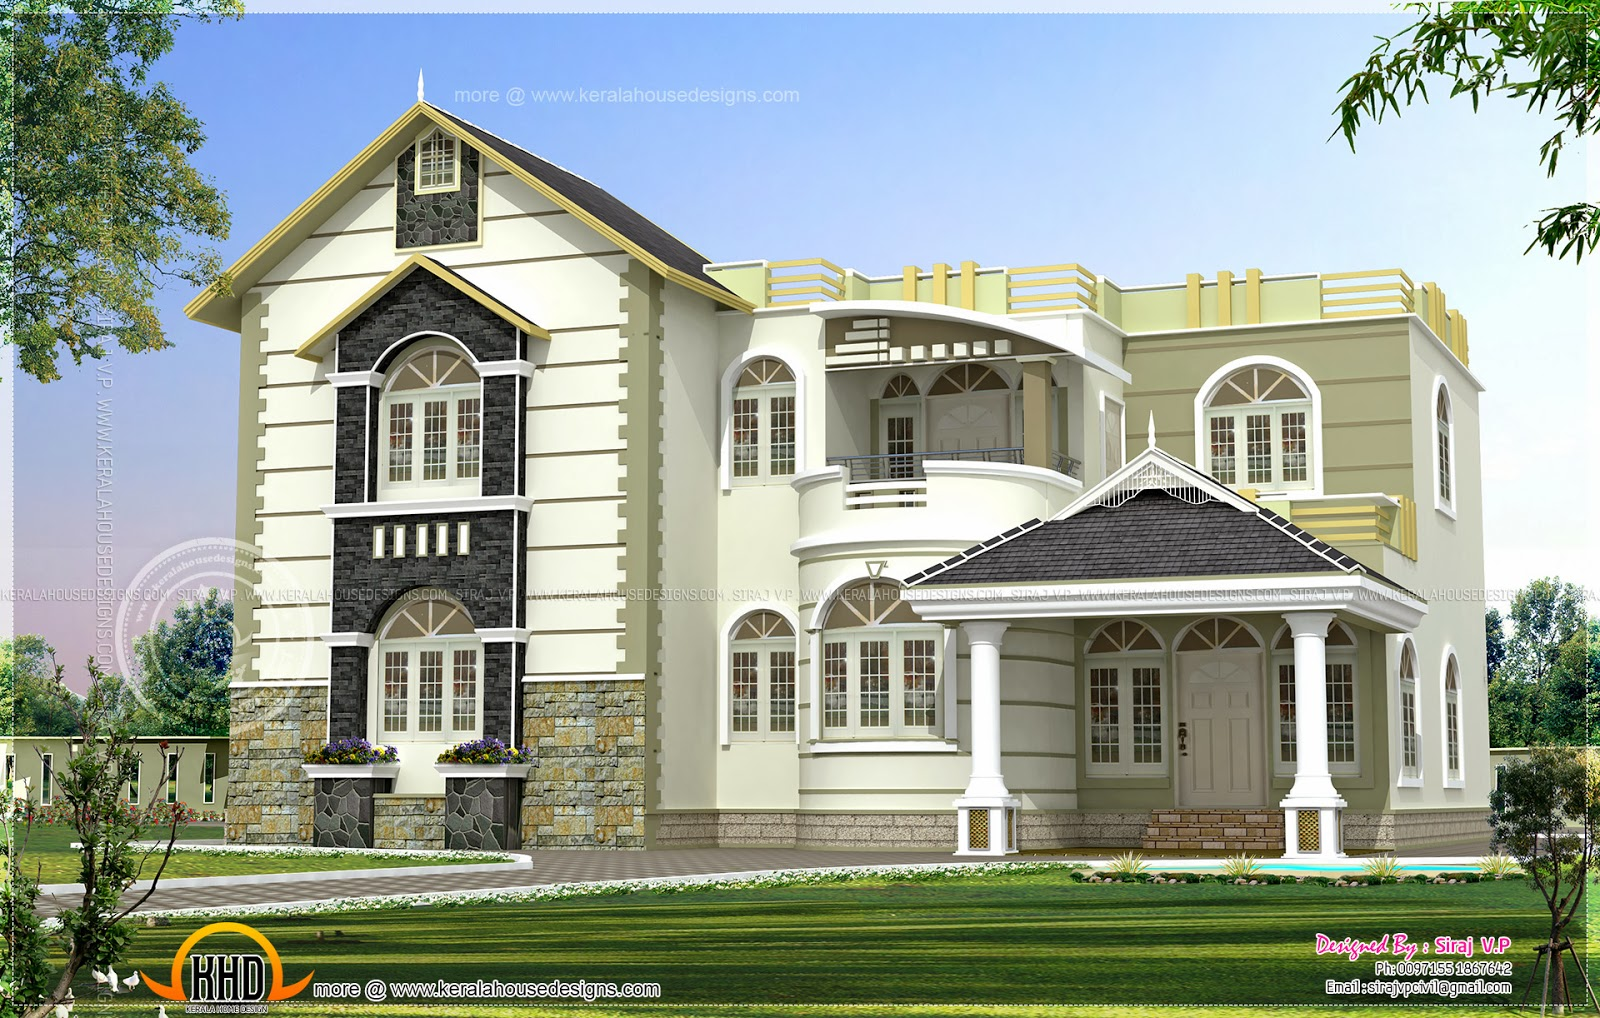 One house exterior design in two color combinations Indian house color combinations